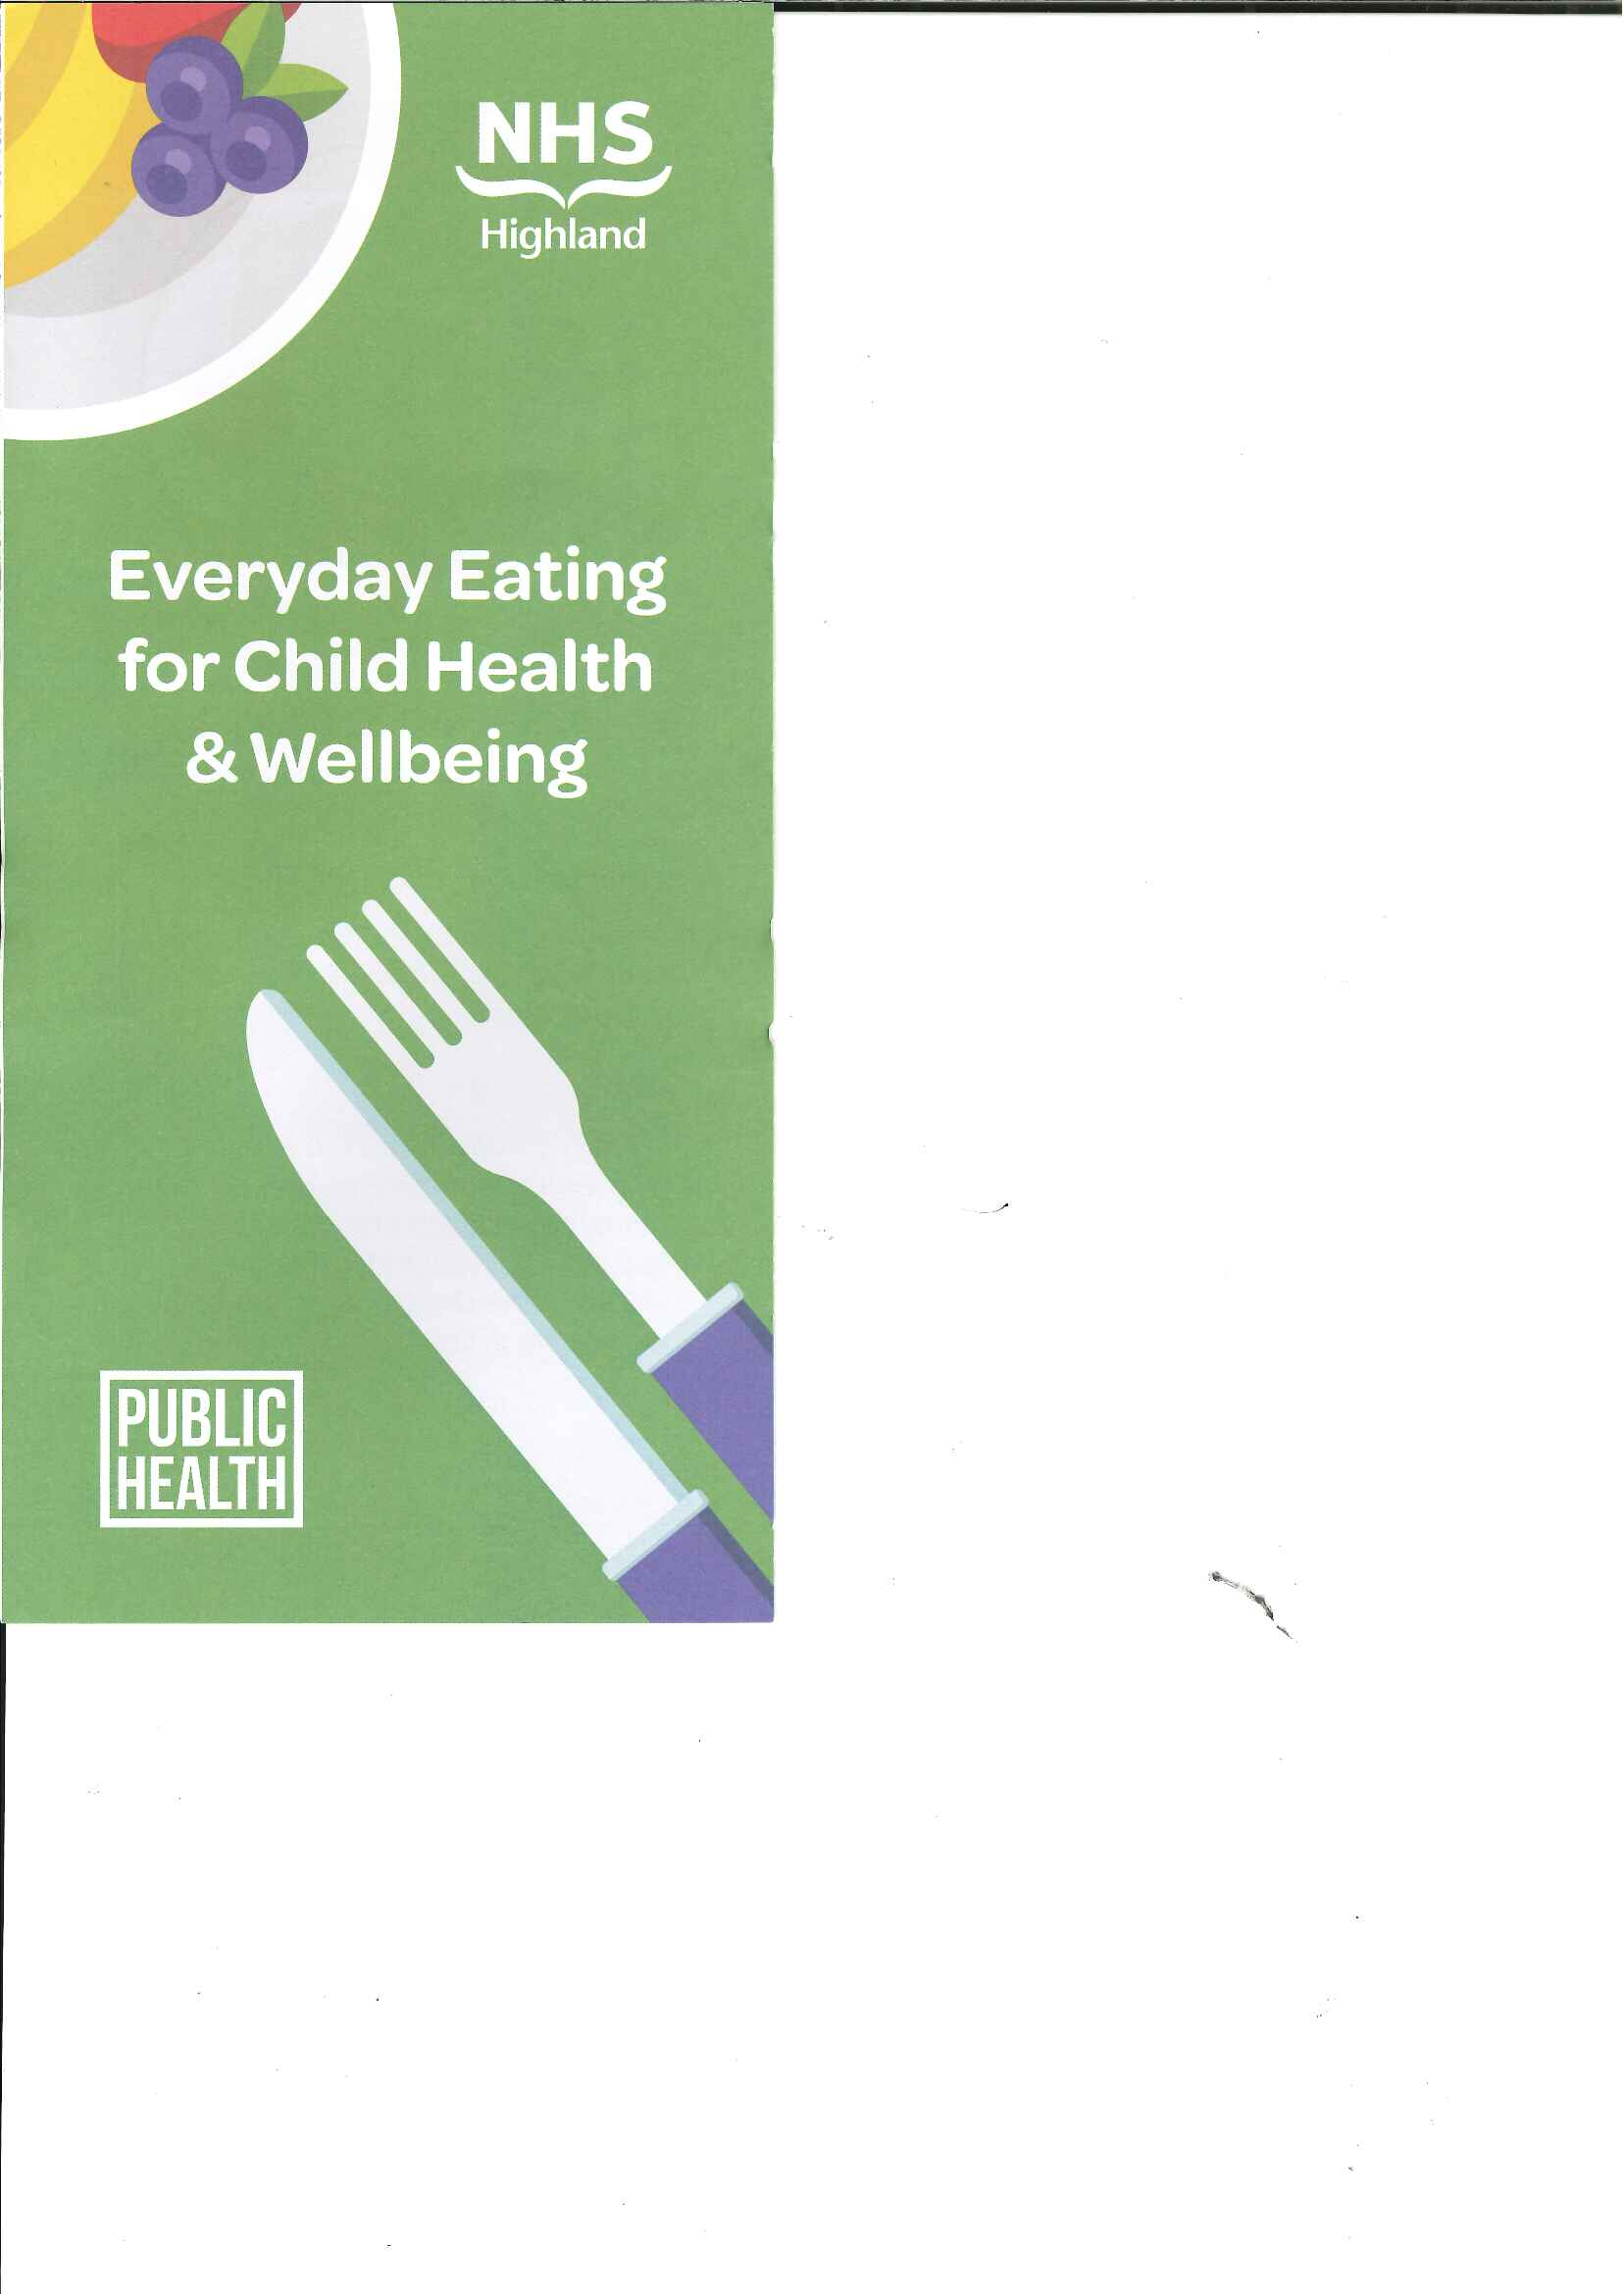 Large image for Everyday Eating for Child Health & Wellbeing